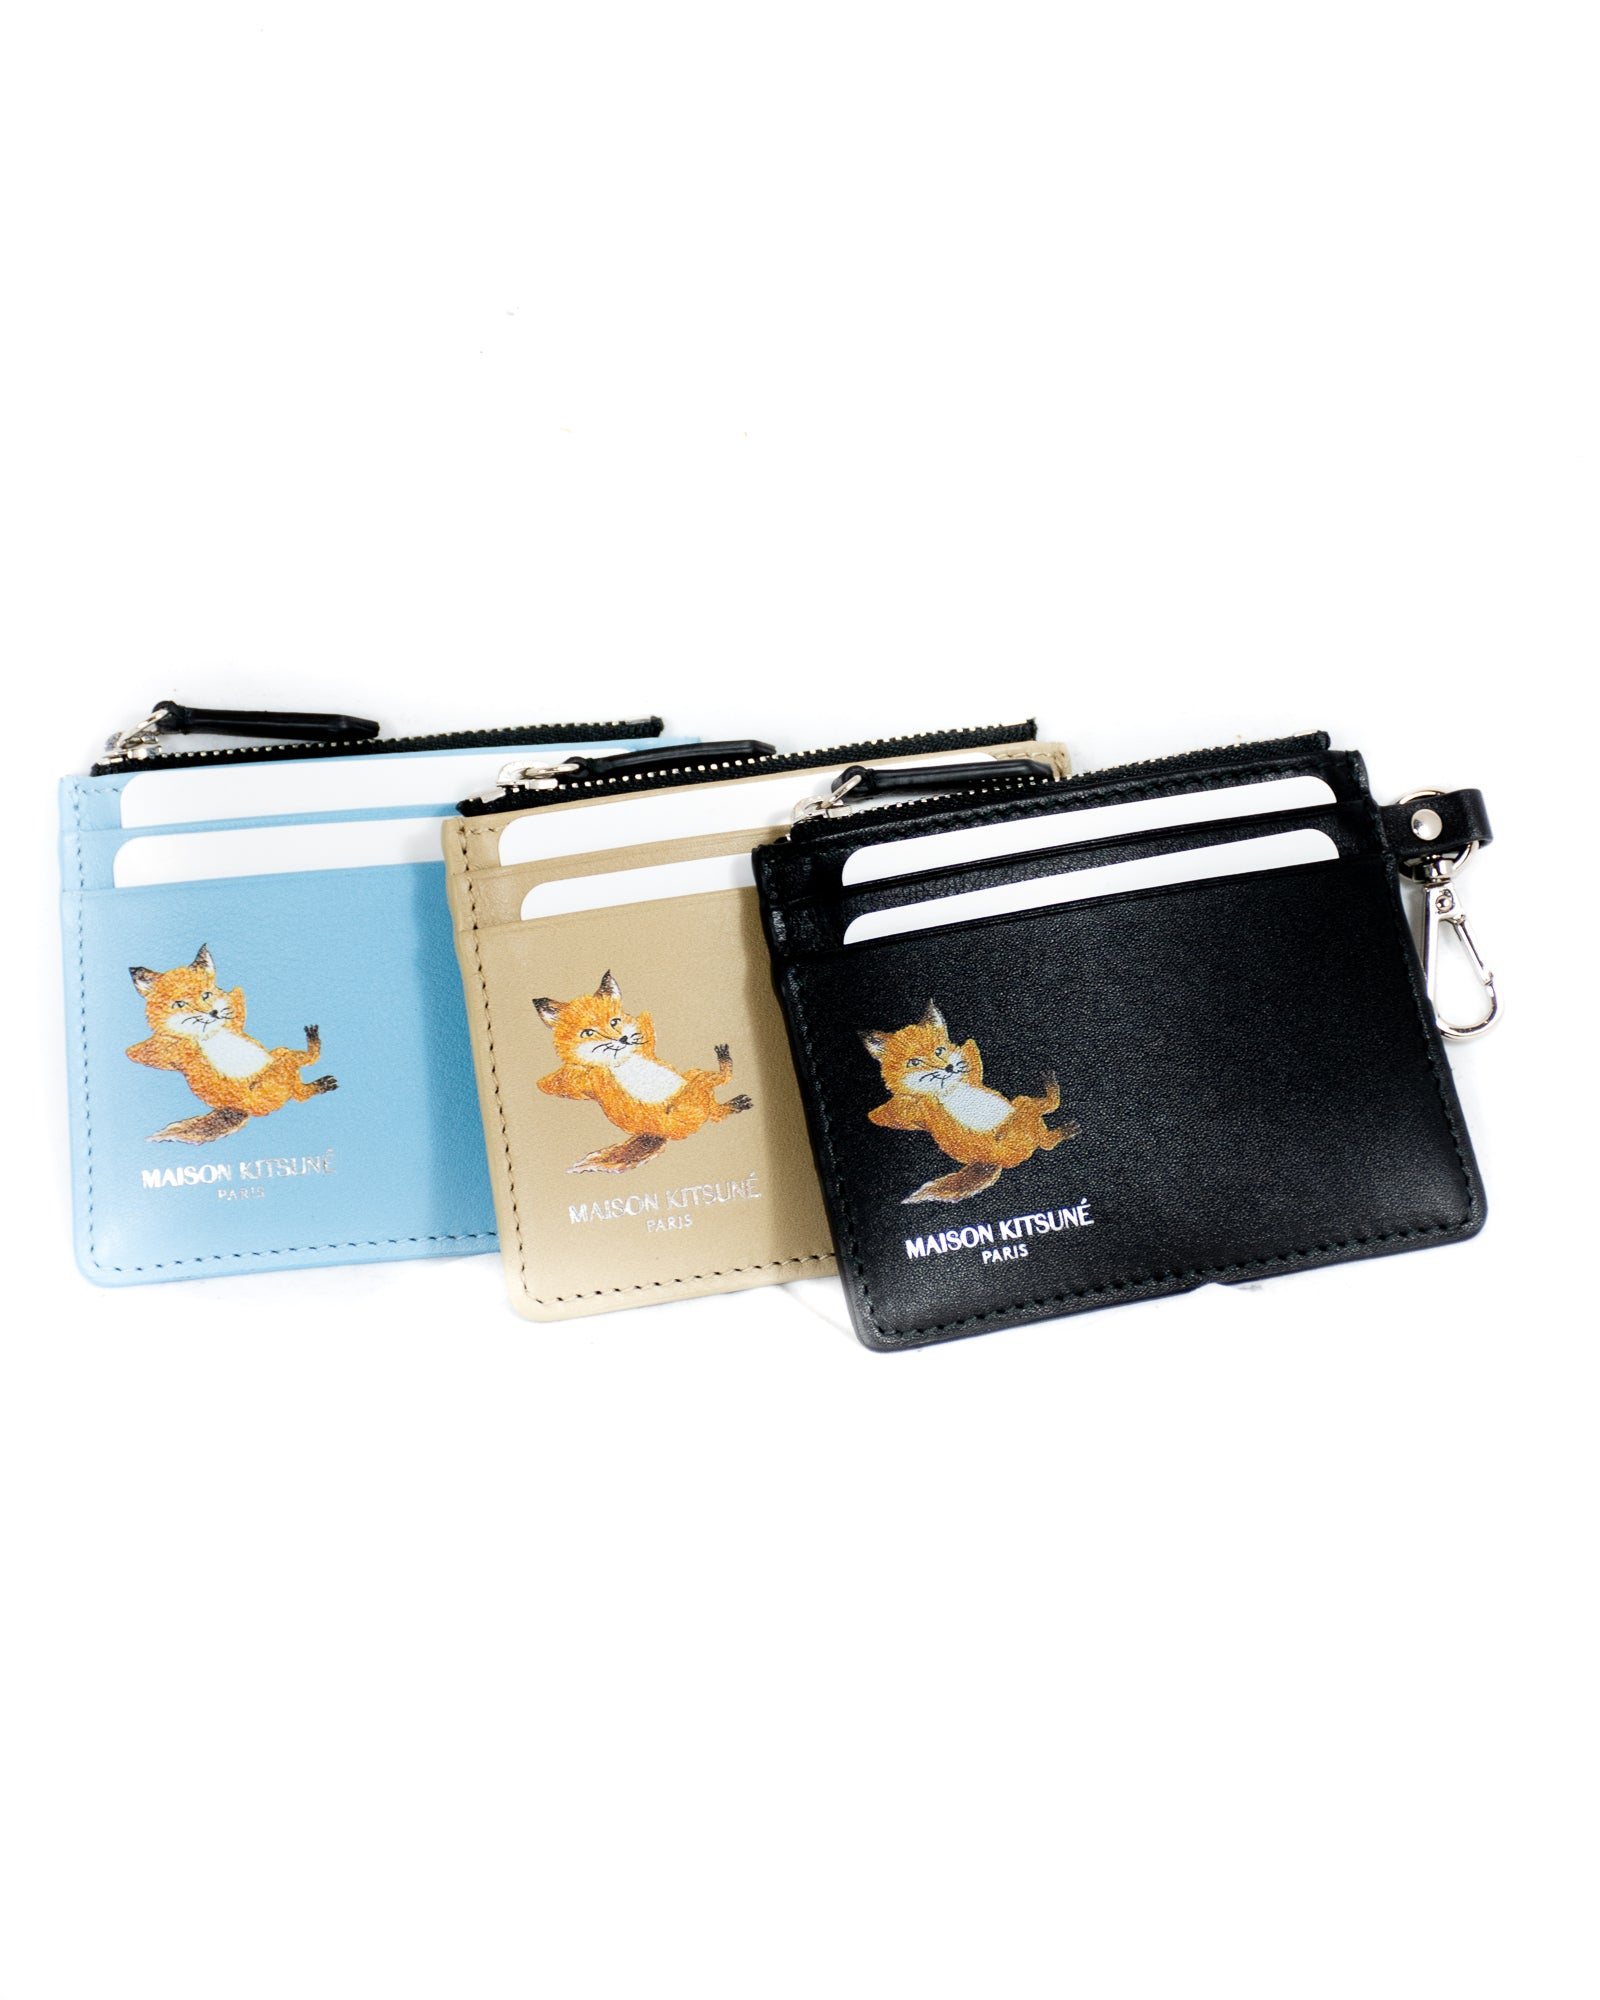 MAISON KITSUNÉ CHILLAX FOX CARD HOLD